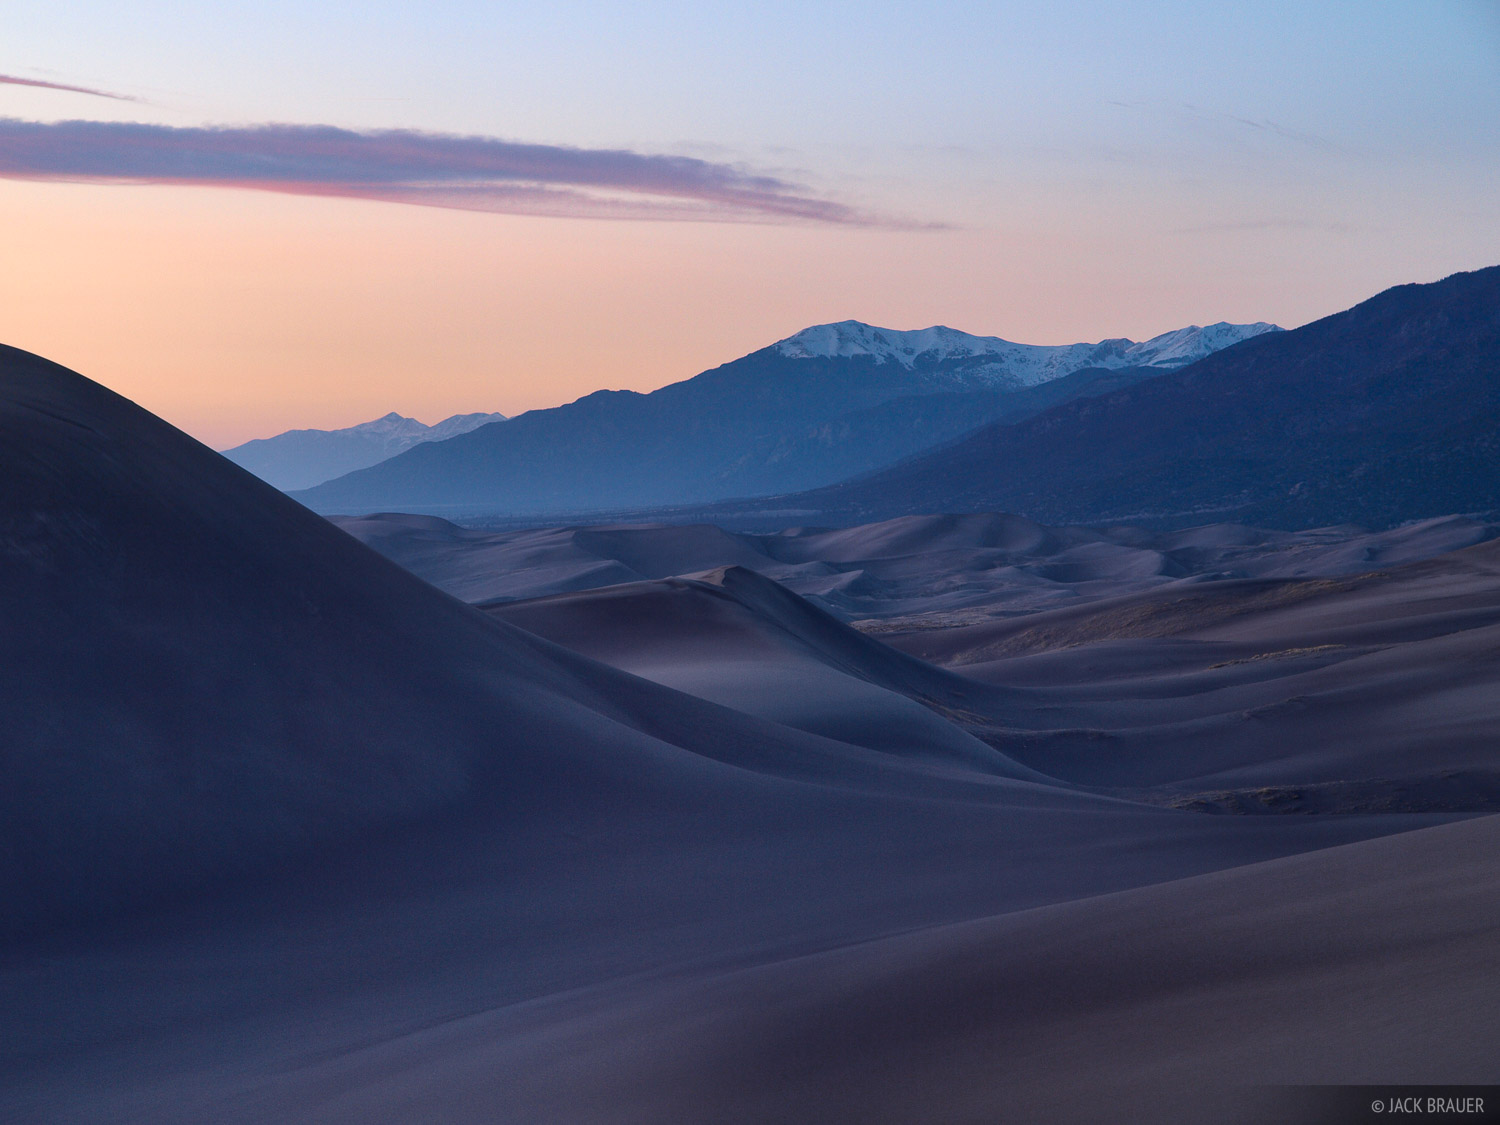 dusk, Great Sand Dunes, Colorado, photo